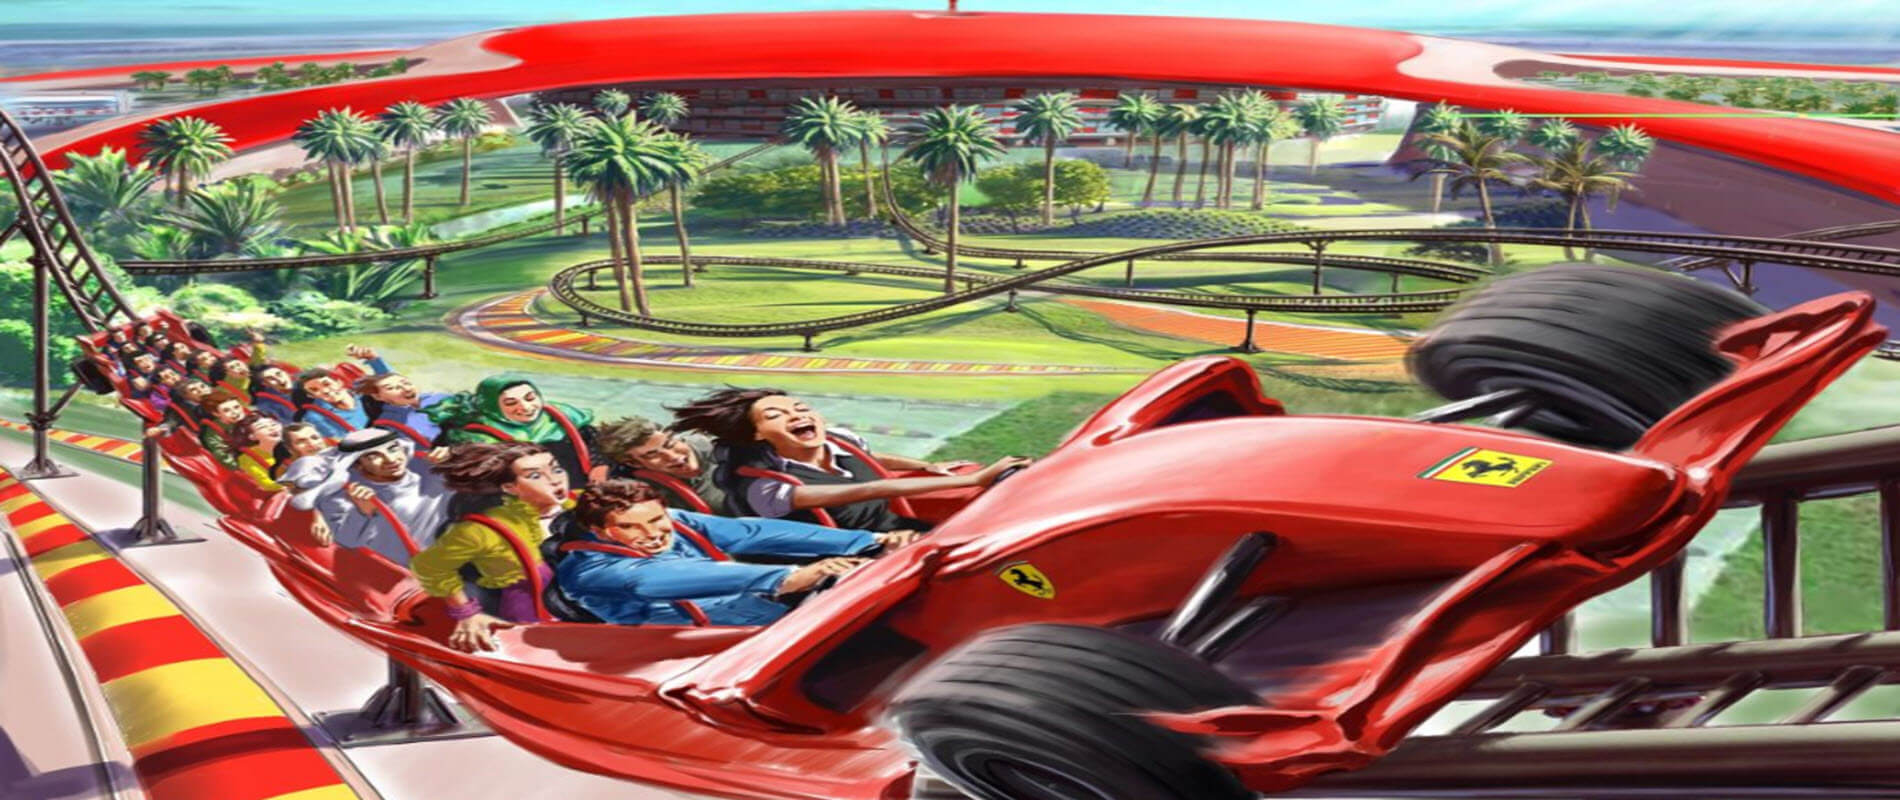 02 Day Any 02 Parks - Ferrari/ Yas/ Warner Bros